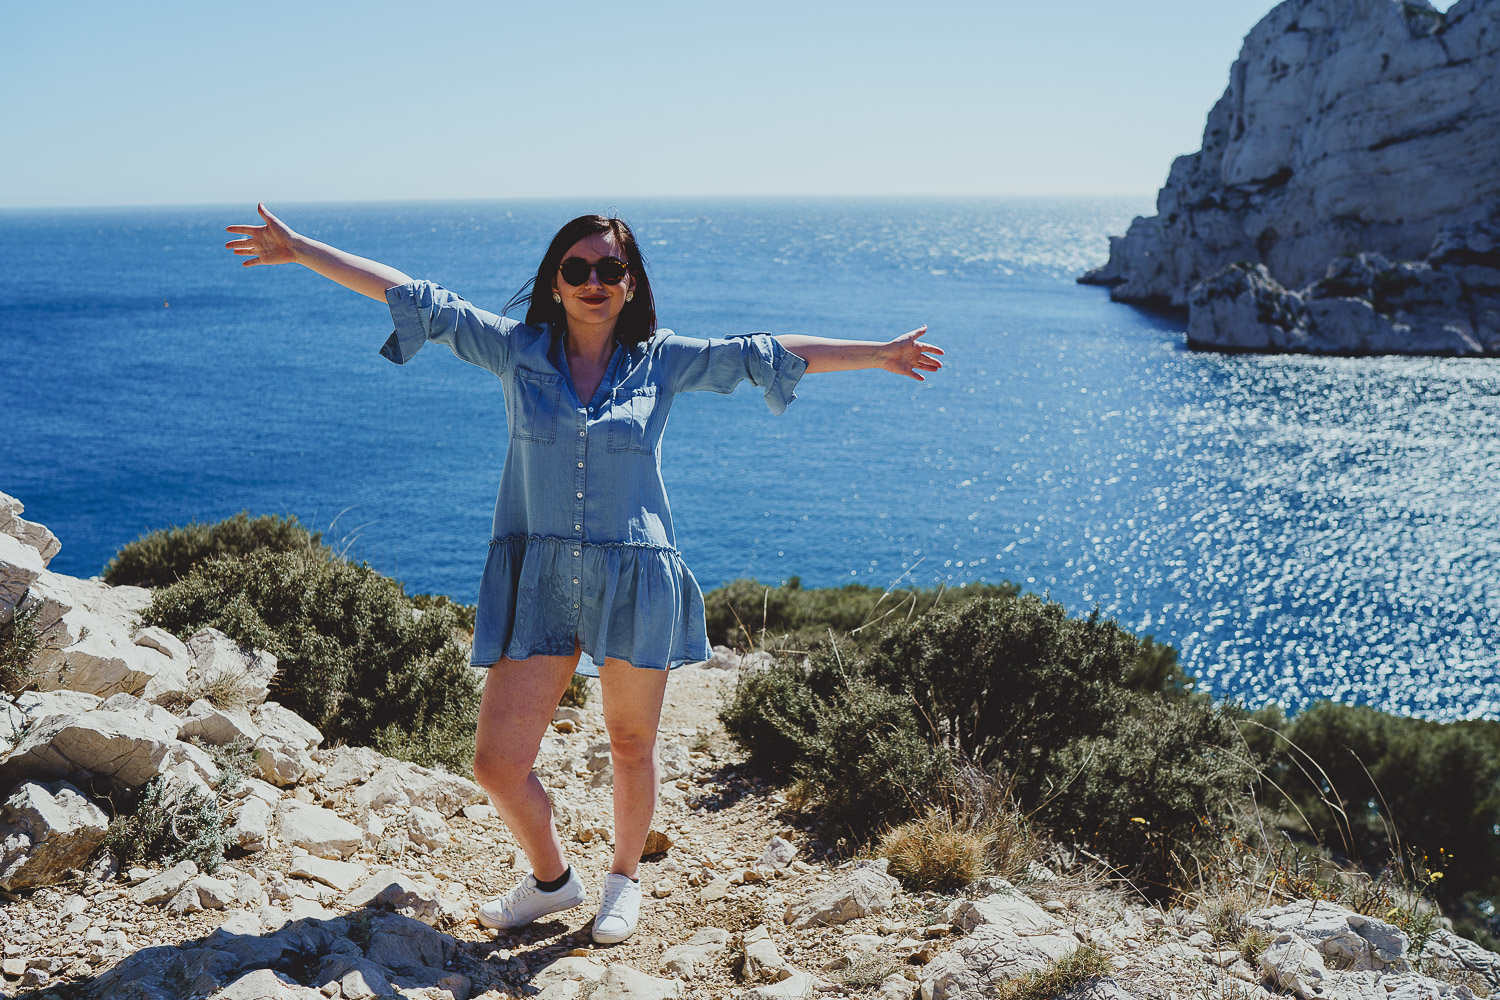 calanques south of france